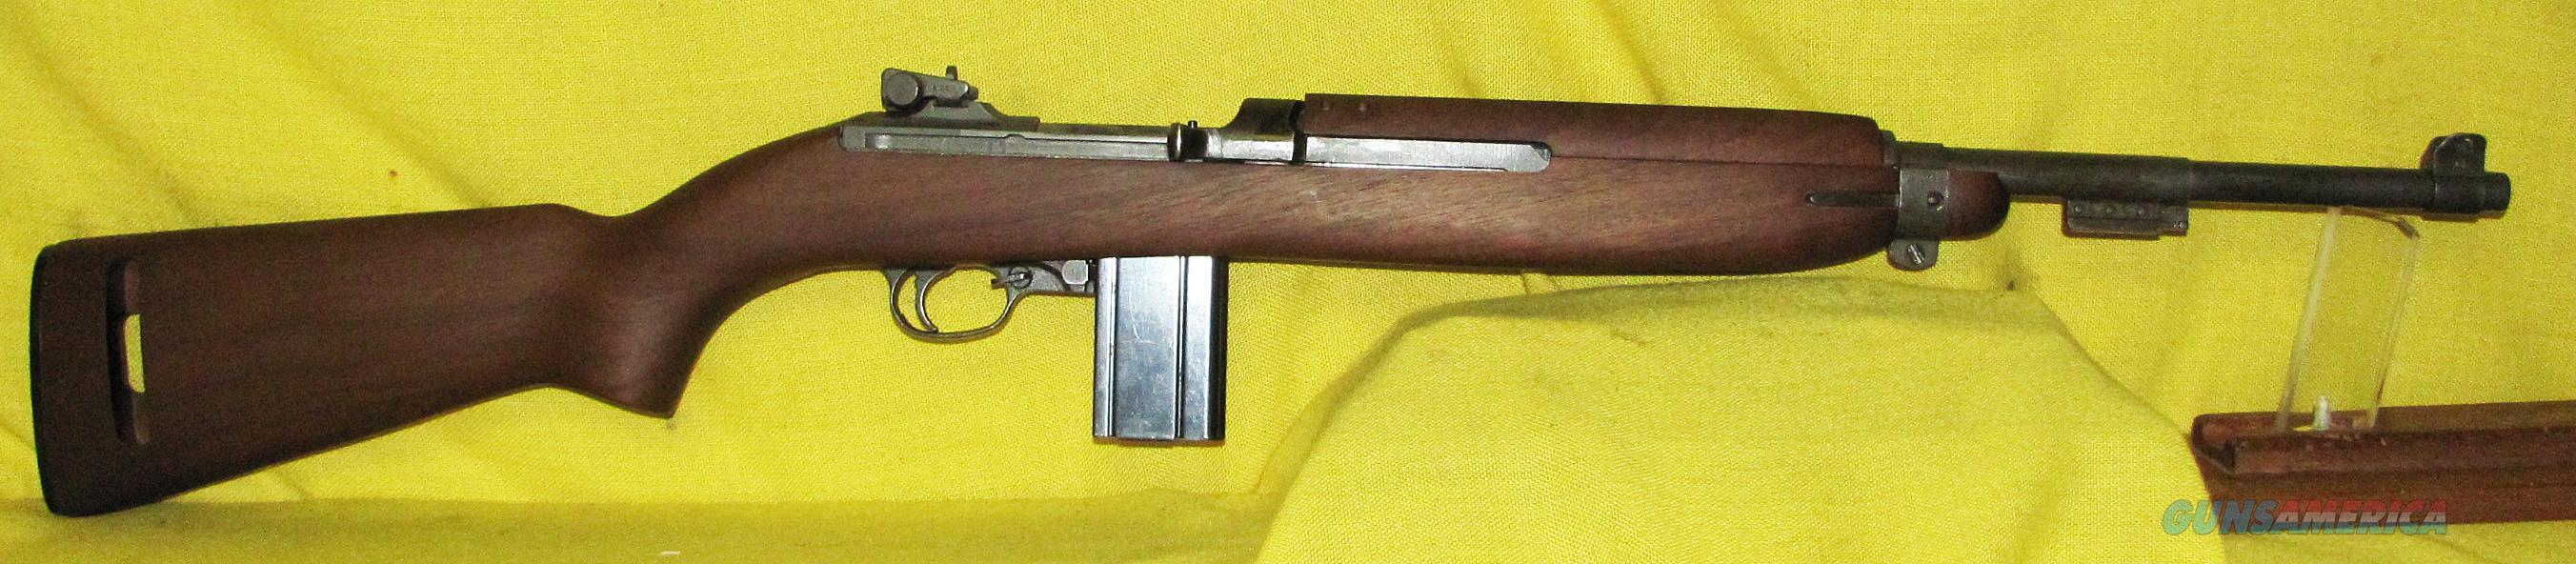 UNDERWOOD M1 CARBINE  Guns > Rifles > Military Misc. Rifles US > M1 Carbine